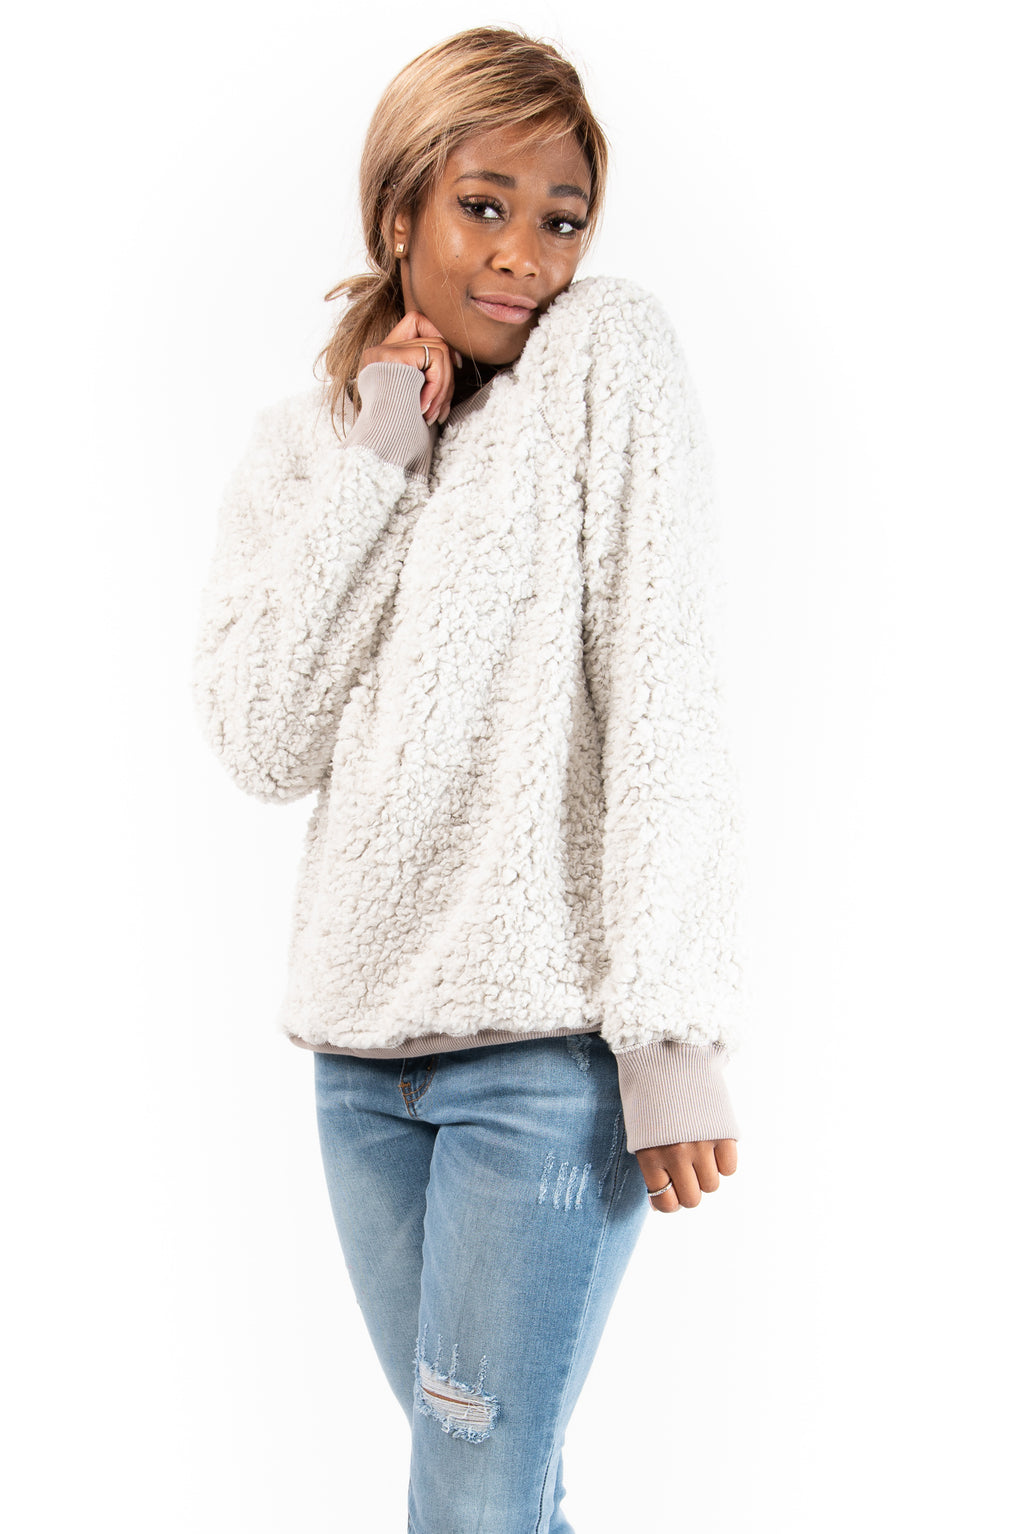 Dylan Teddy Sweater